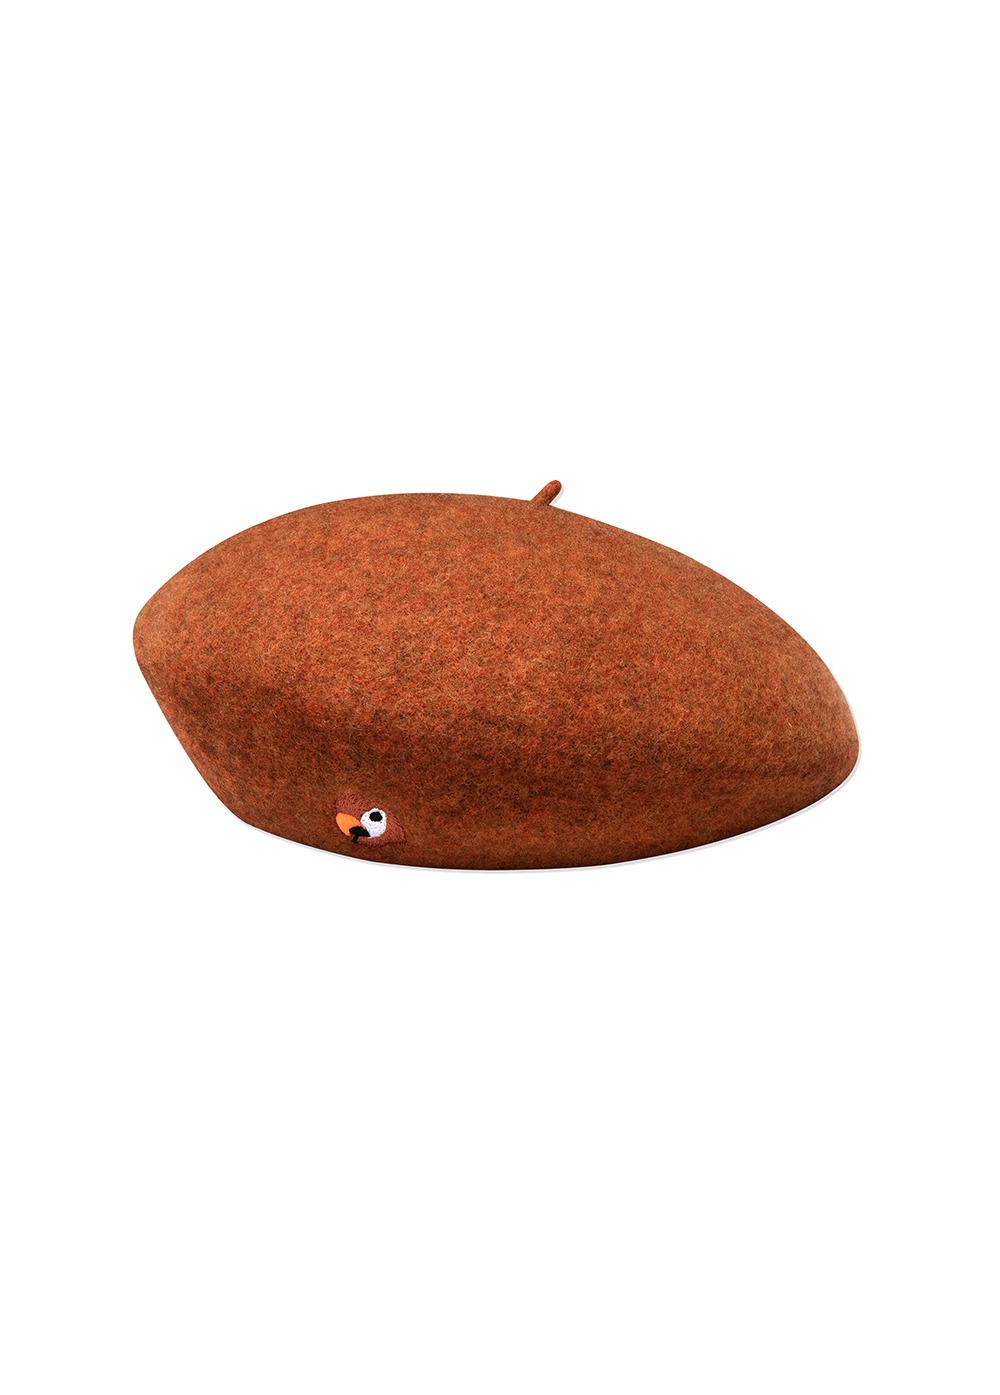 KANCO LOGO FELT BERET red brown